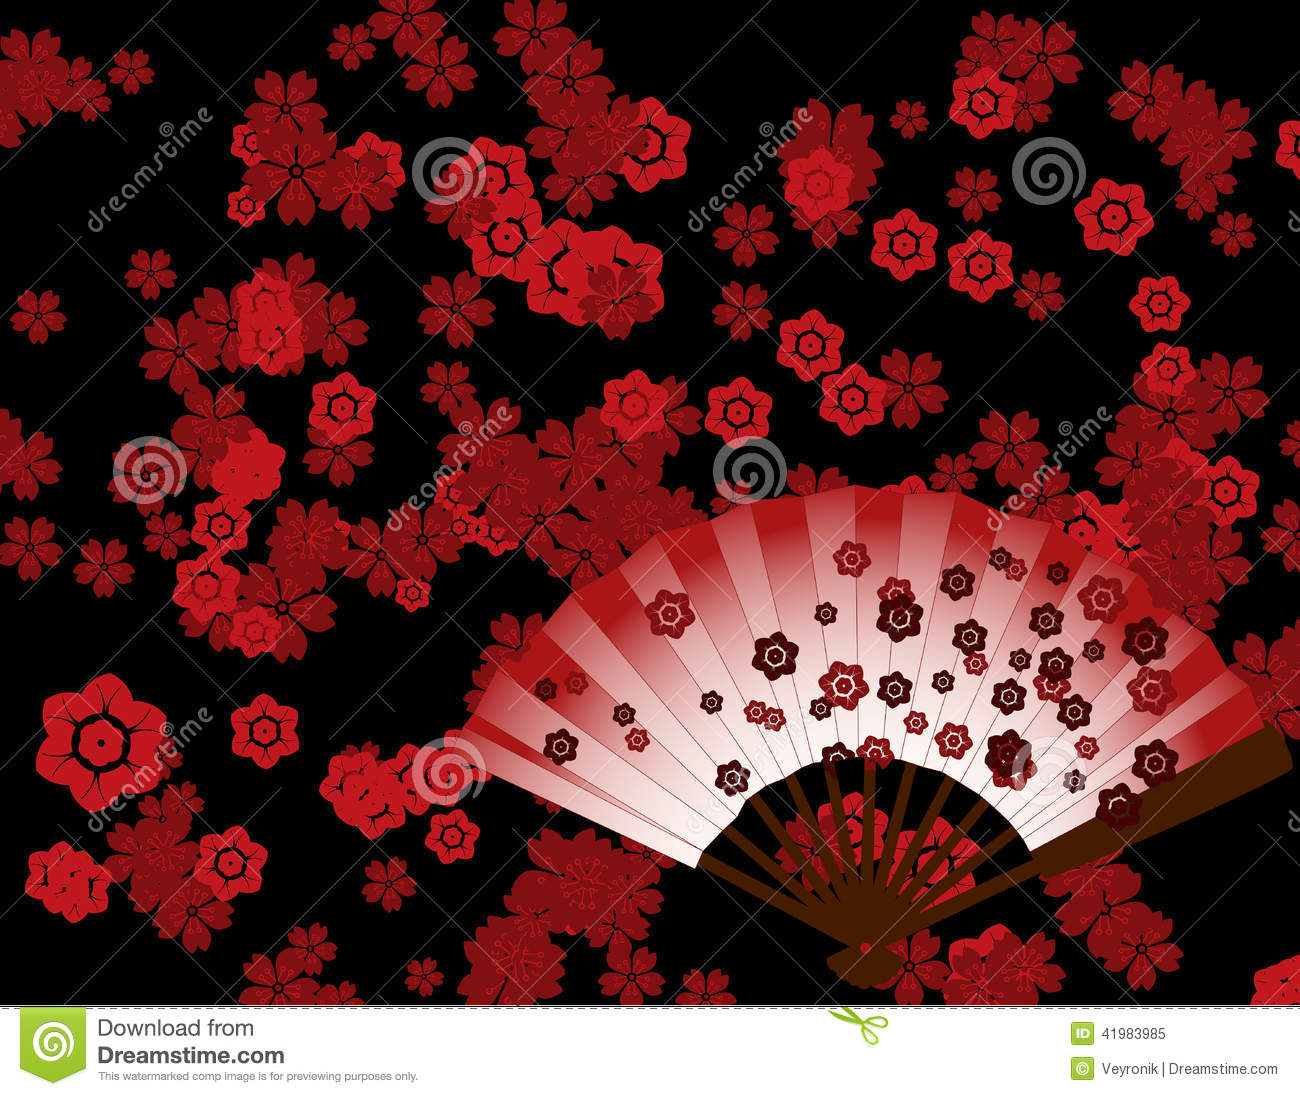 Japanese Flower Wallpaper With Fan Stock Vector - Image: 41983985